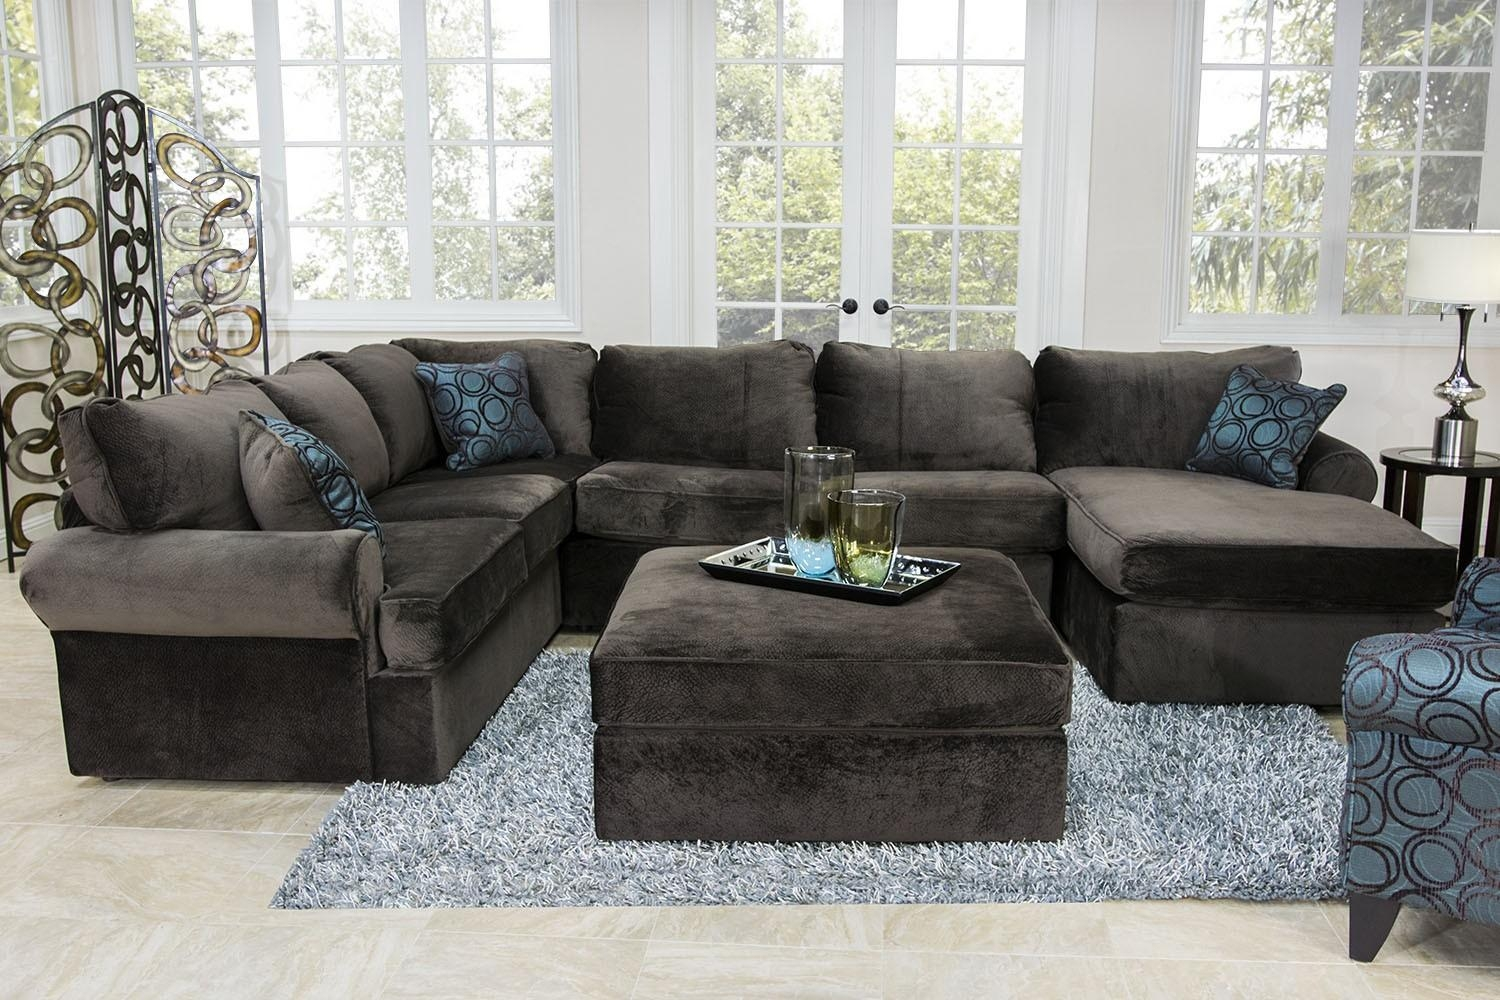 The Napa Chocolate Sectional Living Room Collection | Mor Regarding Media Room Sectional (View 7 of 20)